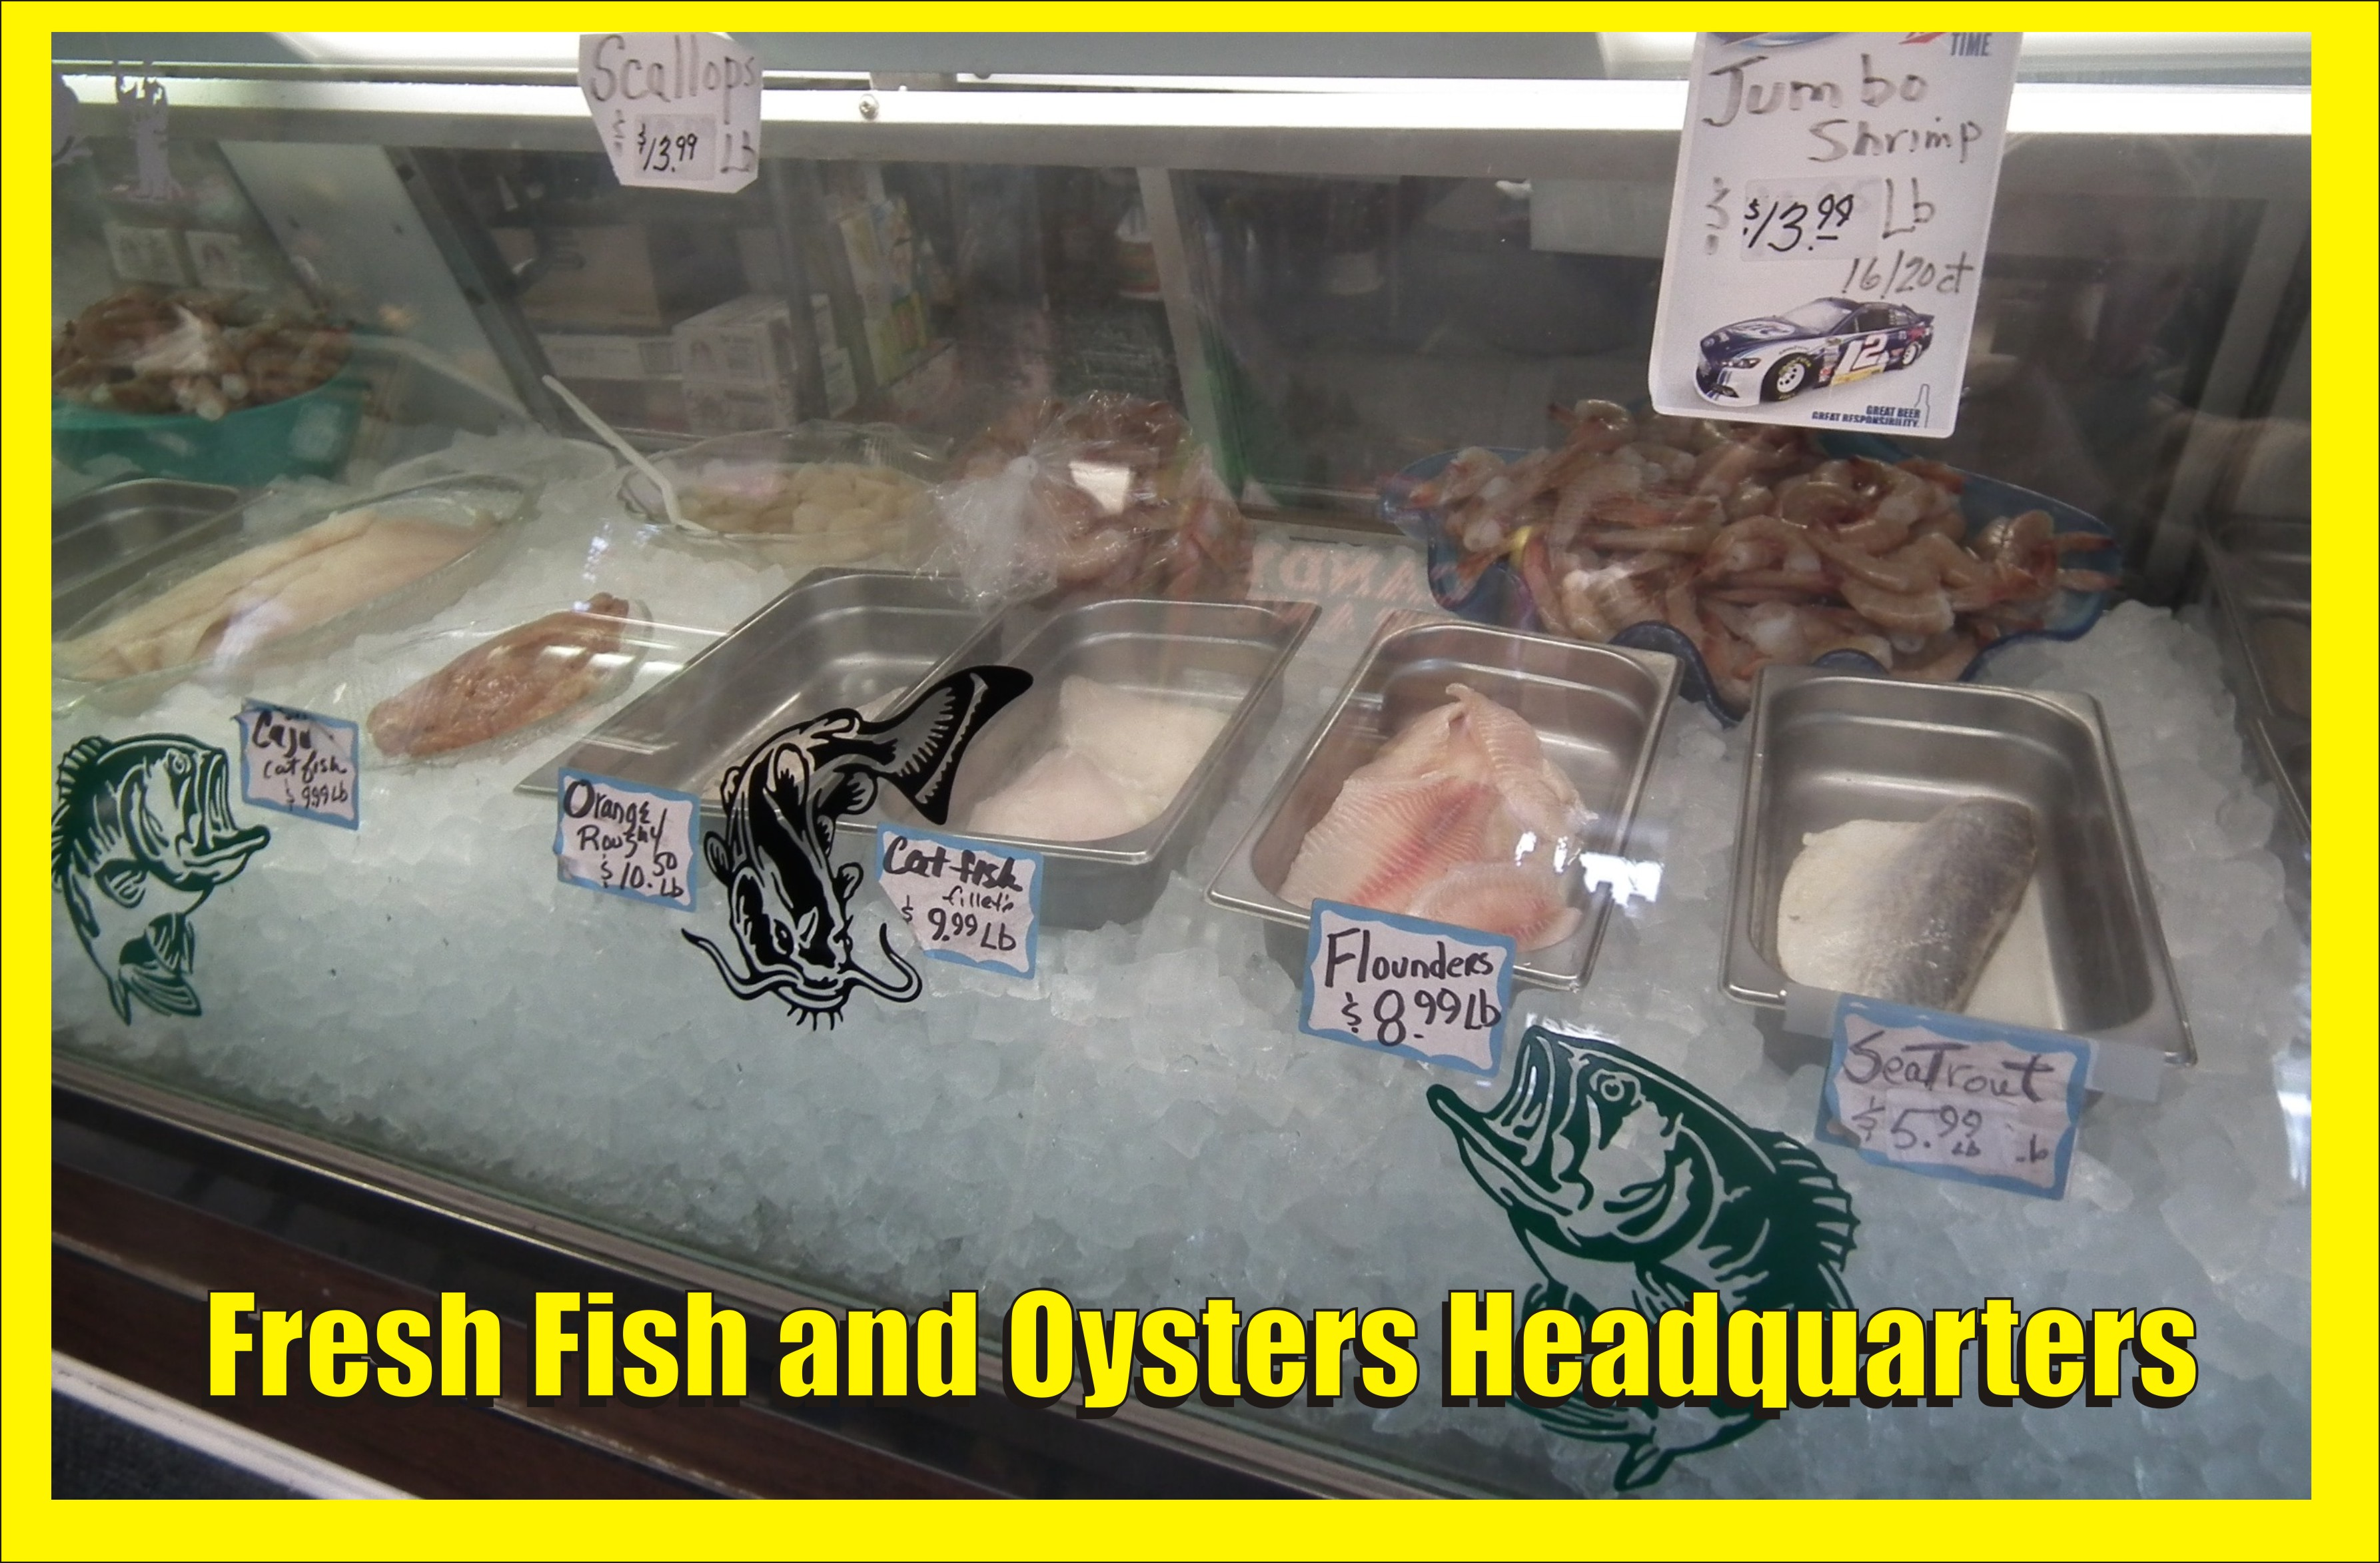 Leonard-Copseys-Seafood-Market-feature - Copy